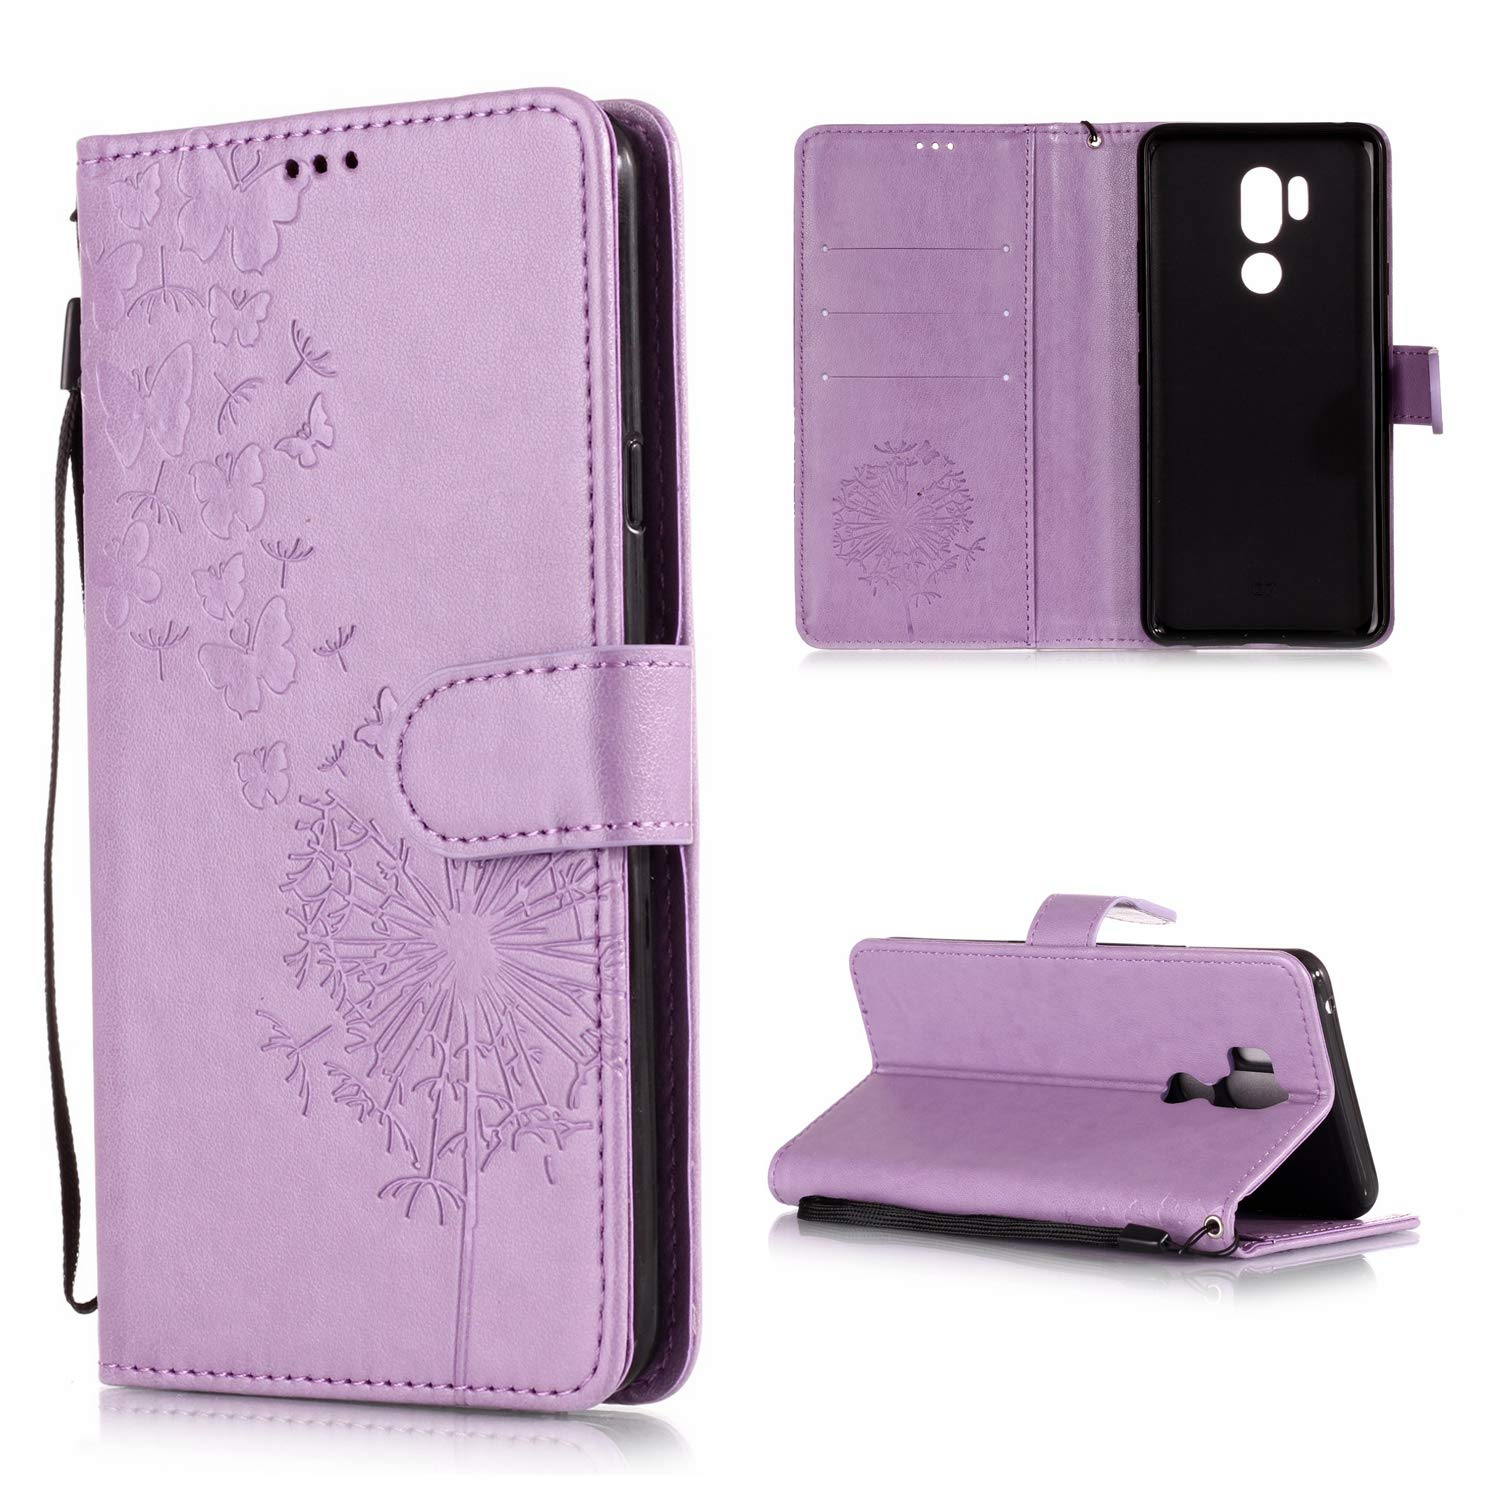 Shinyzone Protective Phone Case for LG G7,LG G7 ThinQ Case Embossed Butterfly Dandelion Pattern Series,Magnetic Stand Cover with Card Slots Leather Wallet Flip Case-Purple by Shinyzone (Image #1)